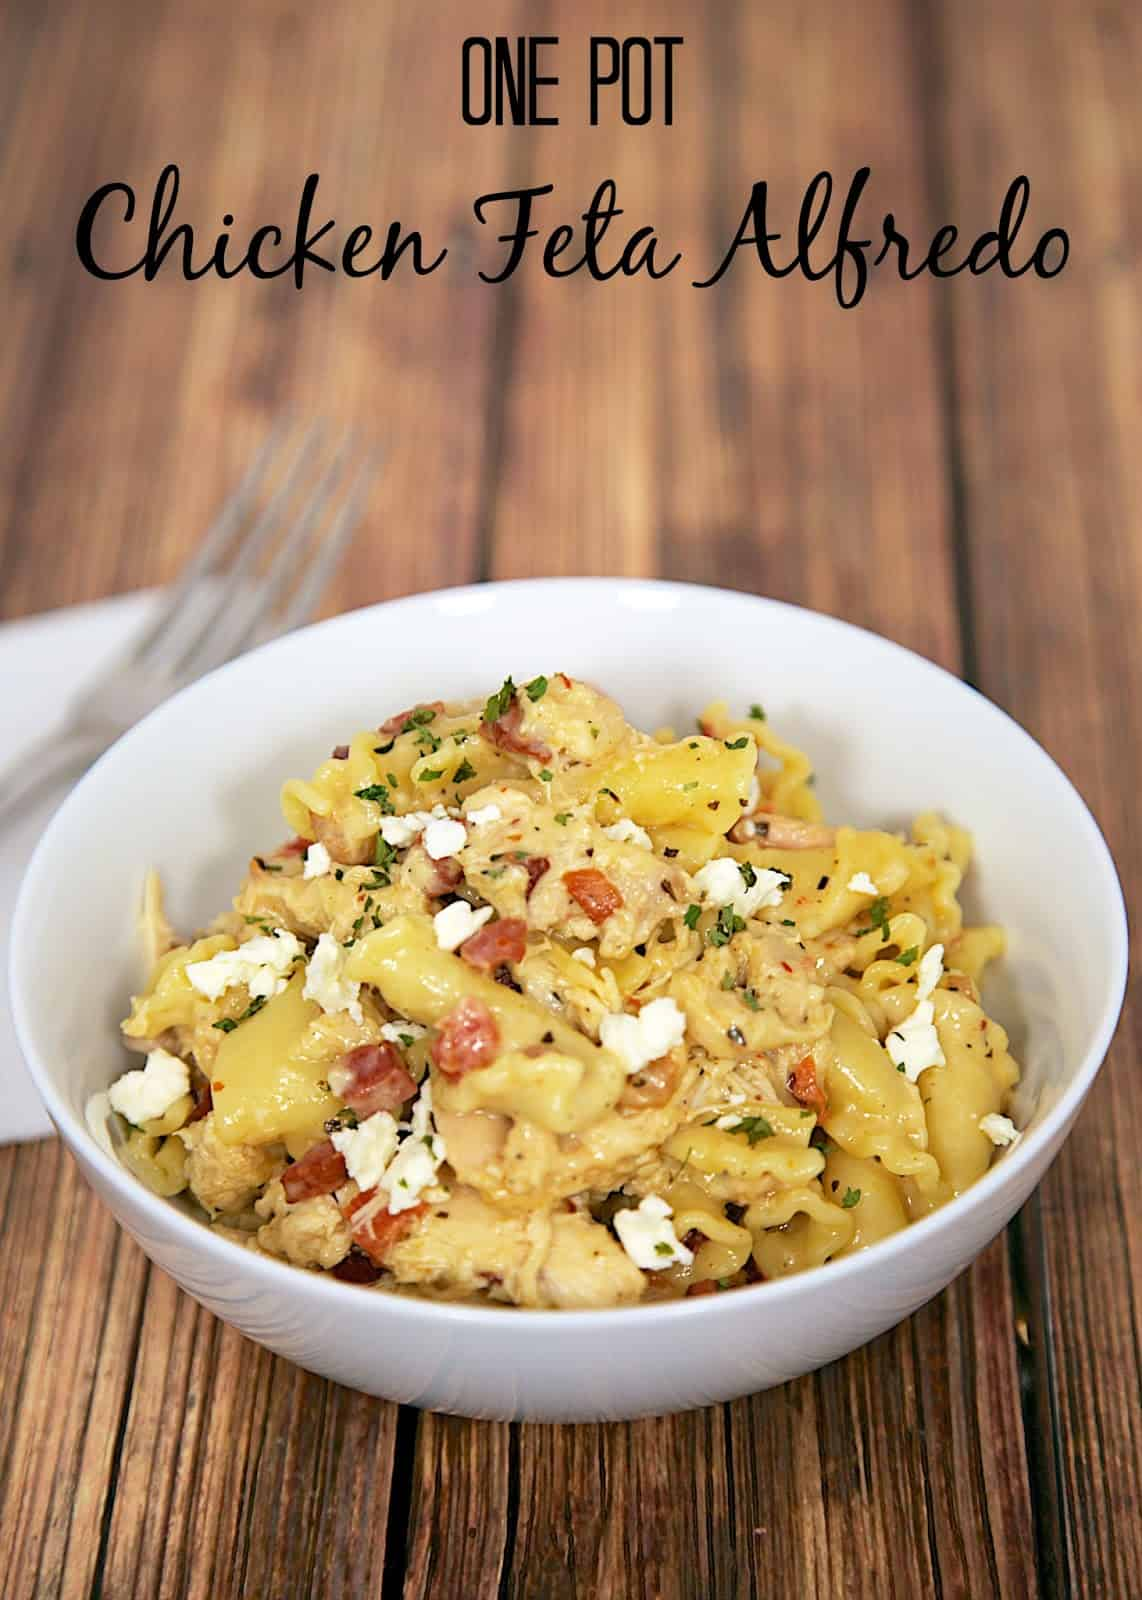 One Pot Chicken Feta Alfredo